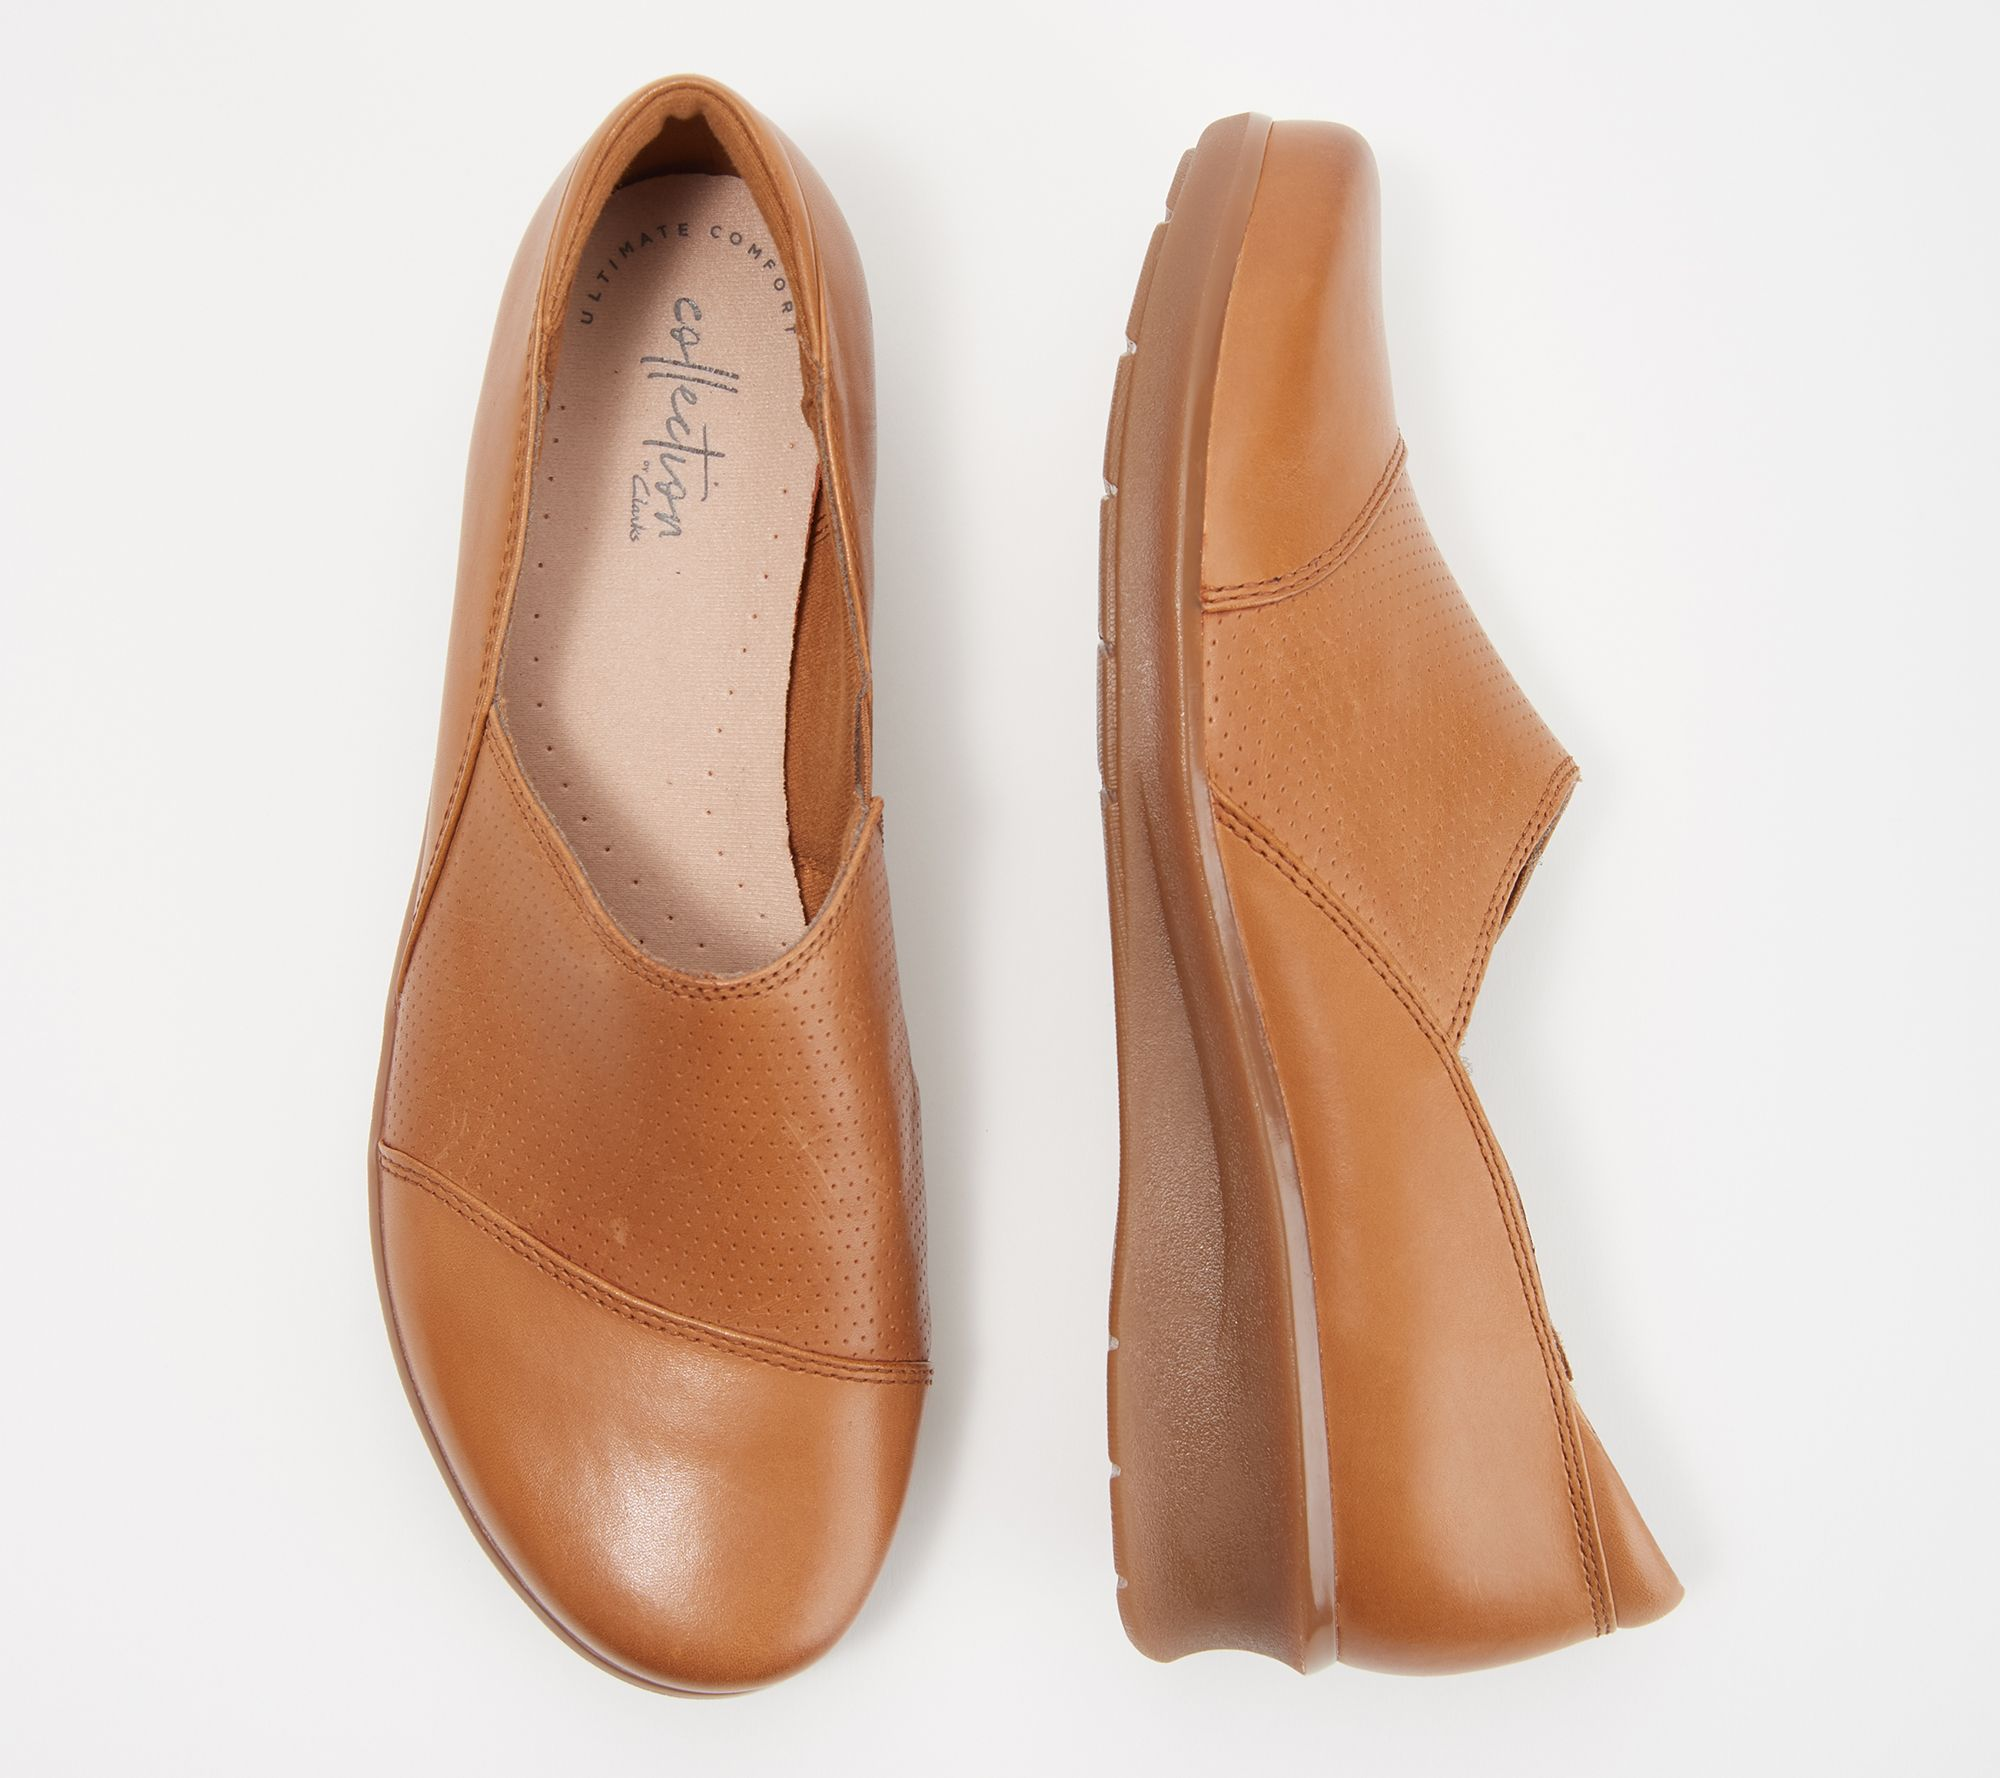 90f93c695037 Clarks Collection Leather Slip-On Shoes- Hope Porter - Page 1 — QVC.com